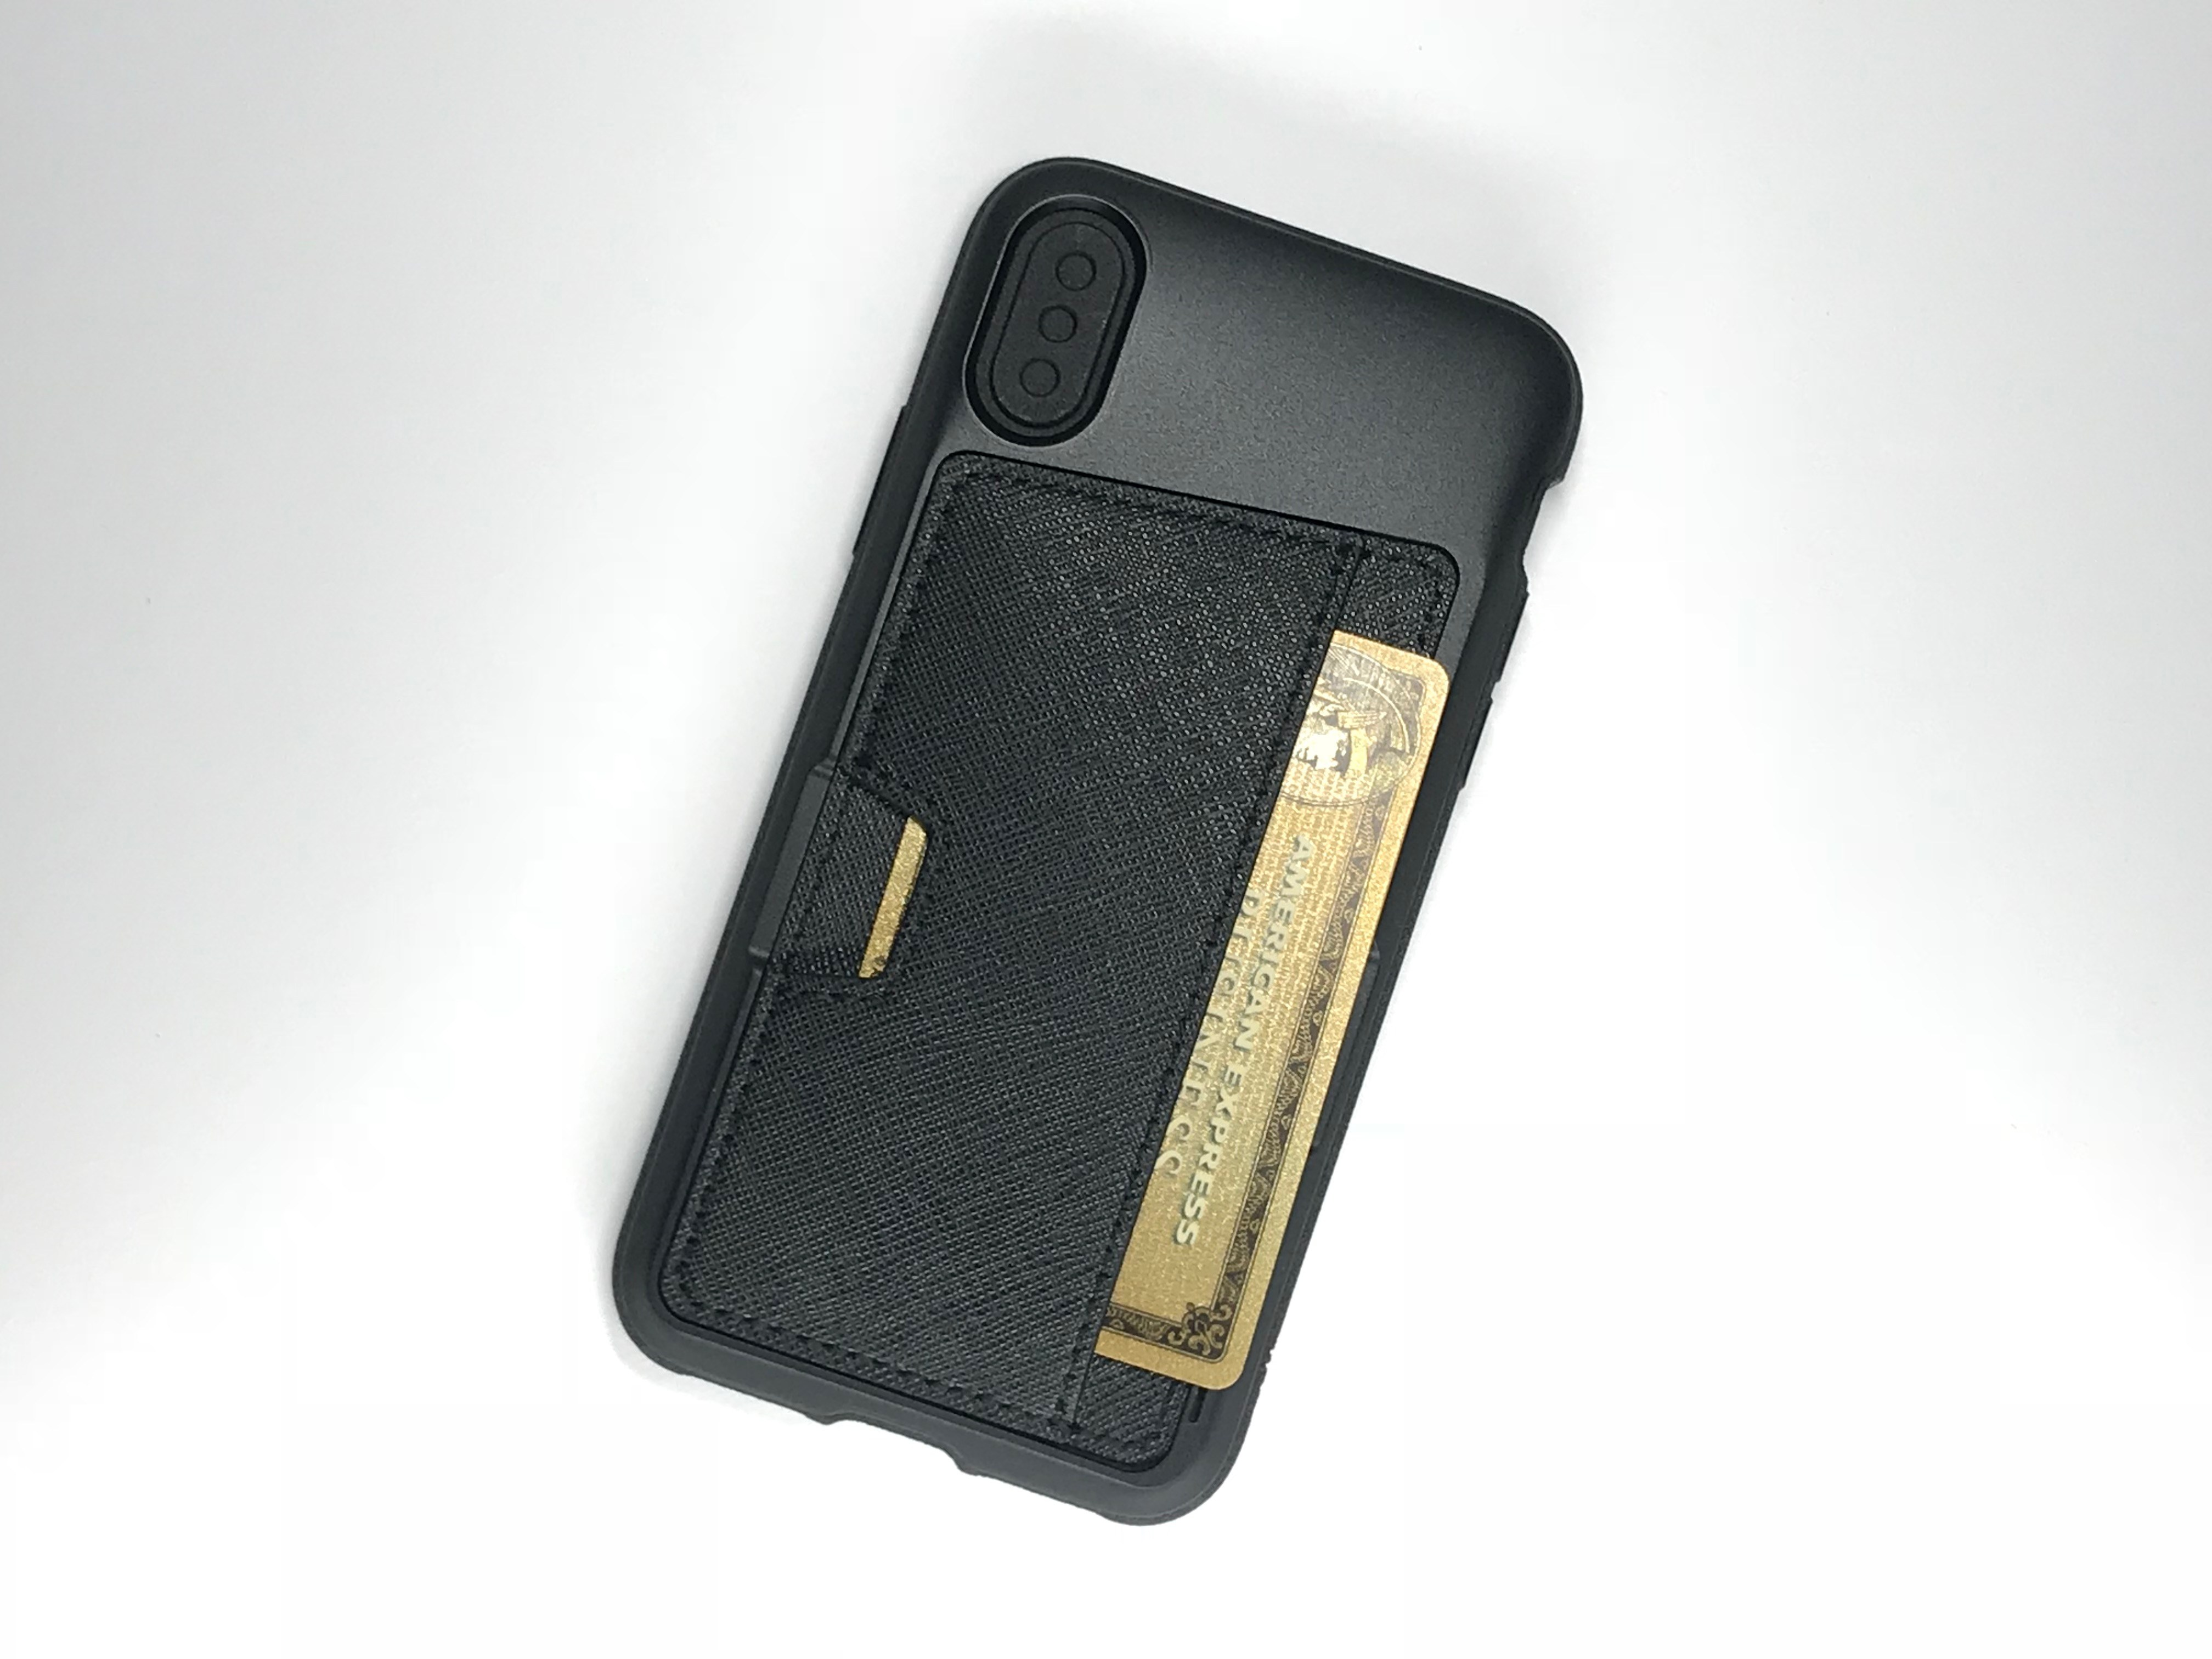 What you need to know about wirelessly charging the iPhone 8 or iPhone X with a wallet case.